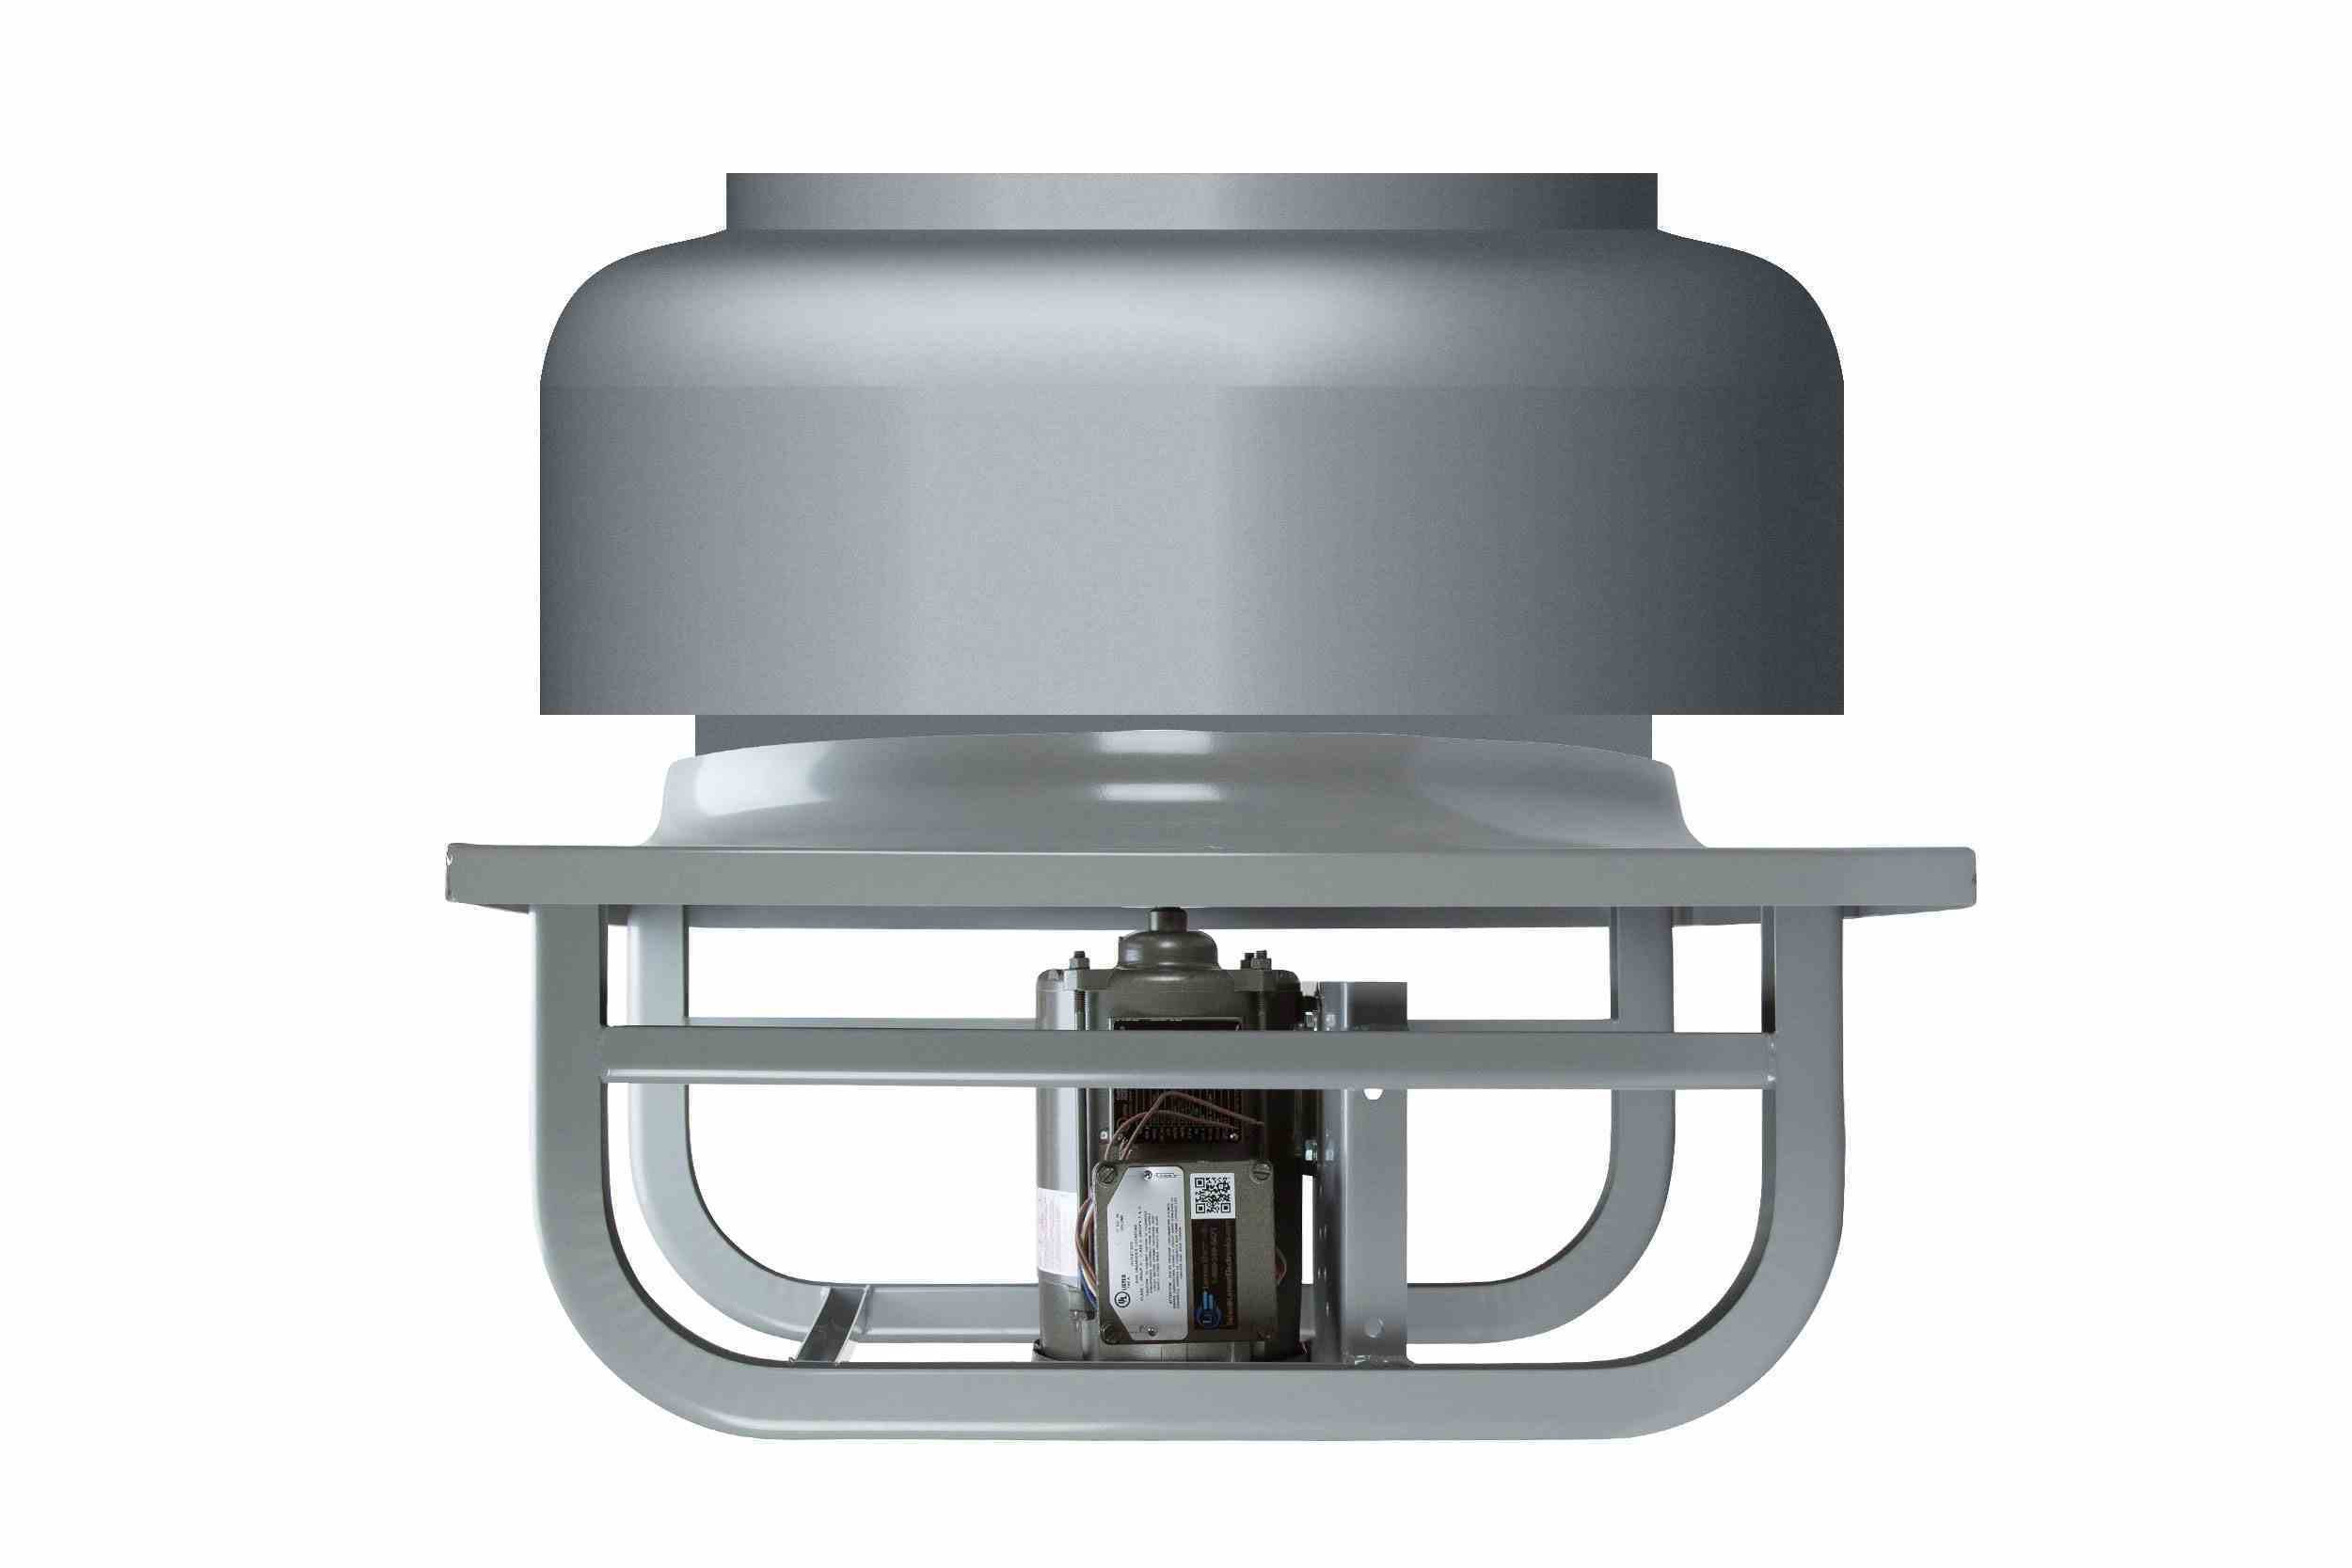 12 explosion proof exhaust fan 1200 cfm 1 2hp 480v 3ph roof mount